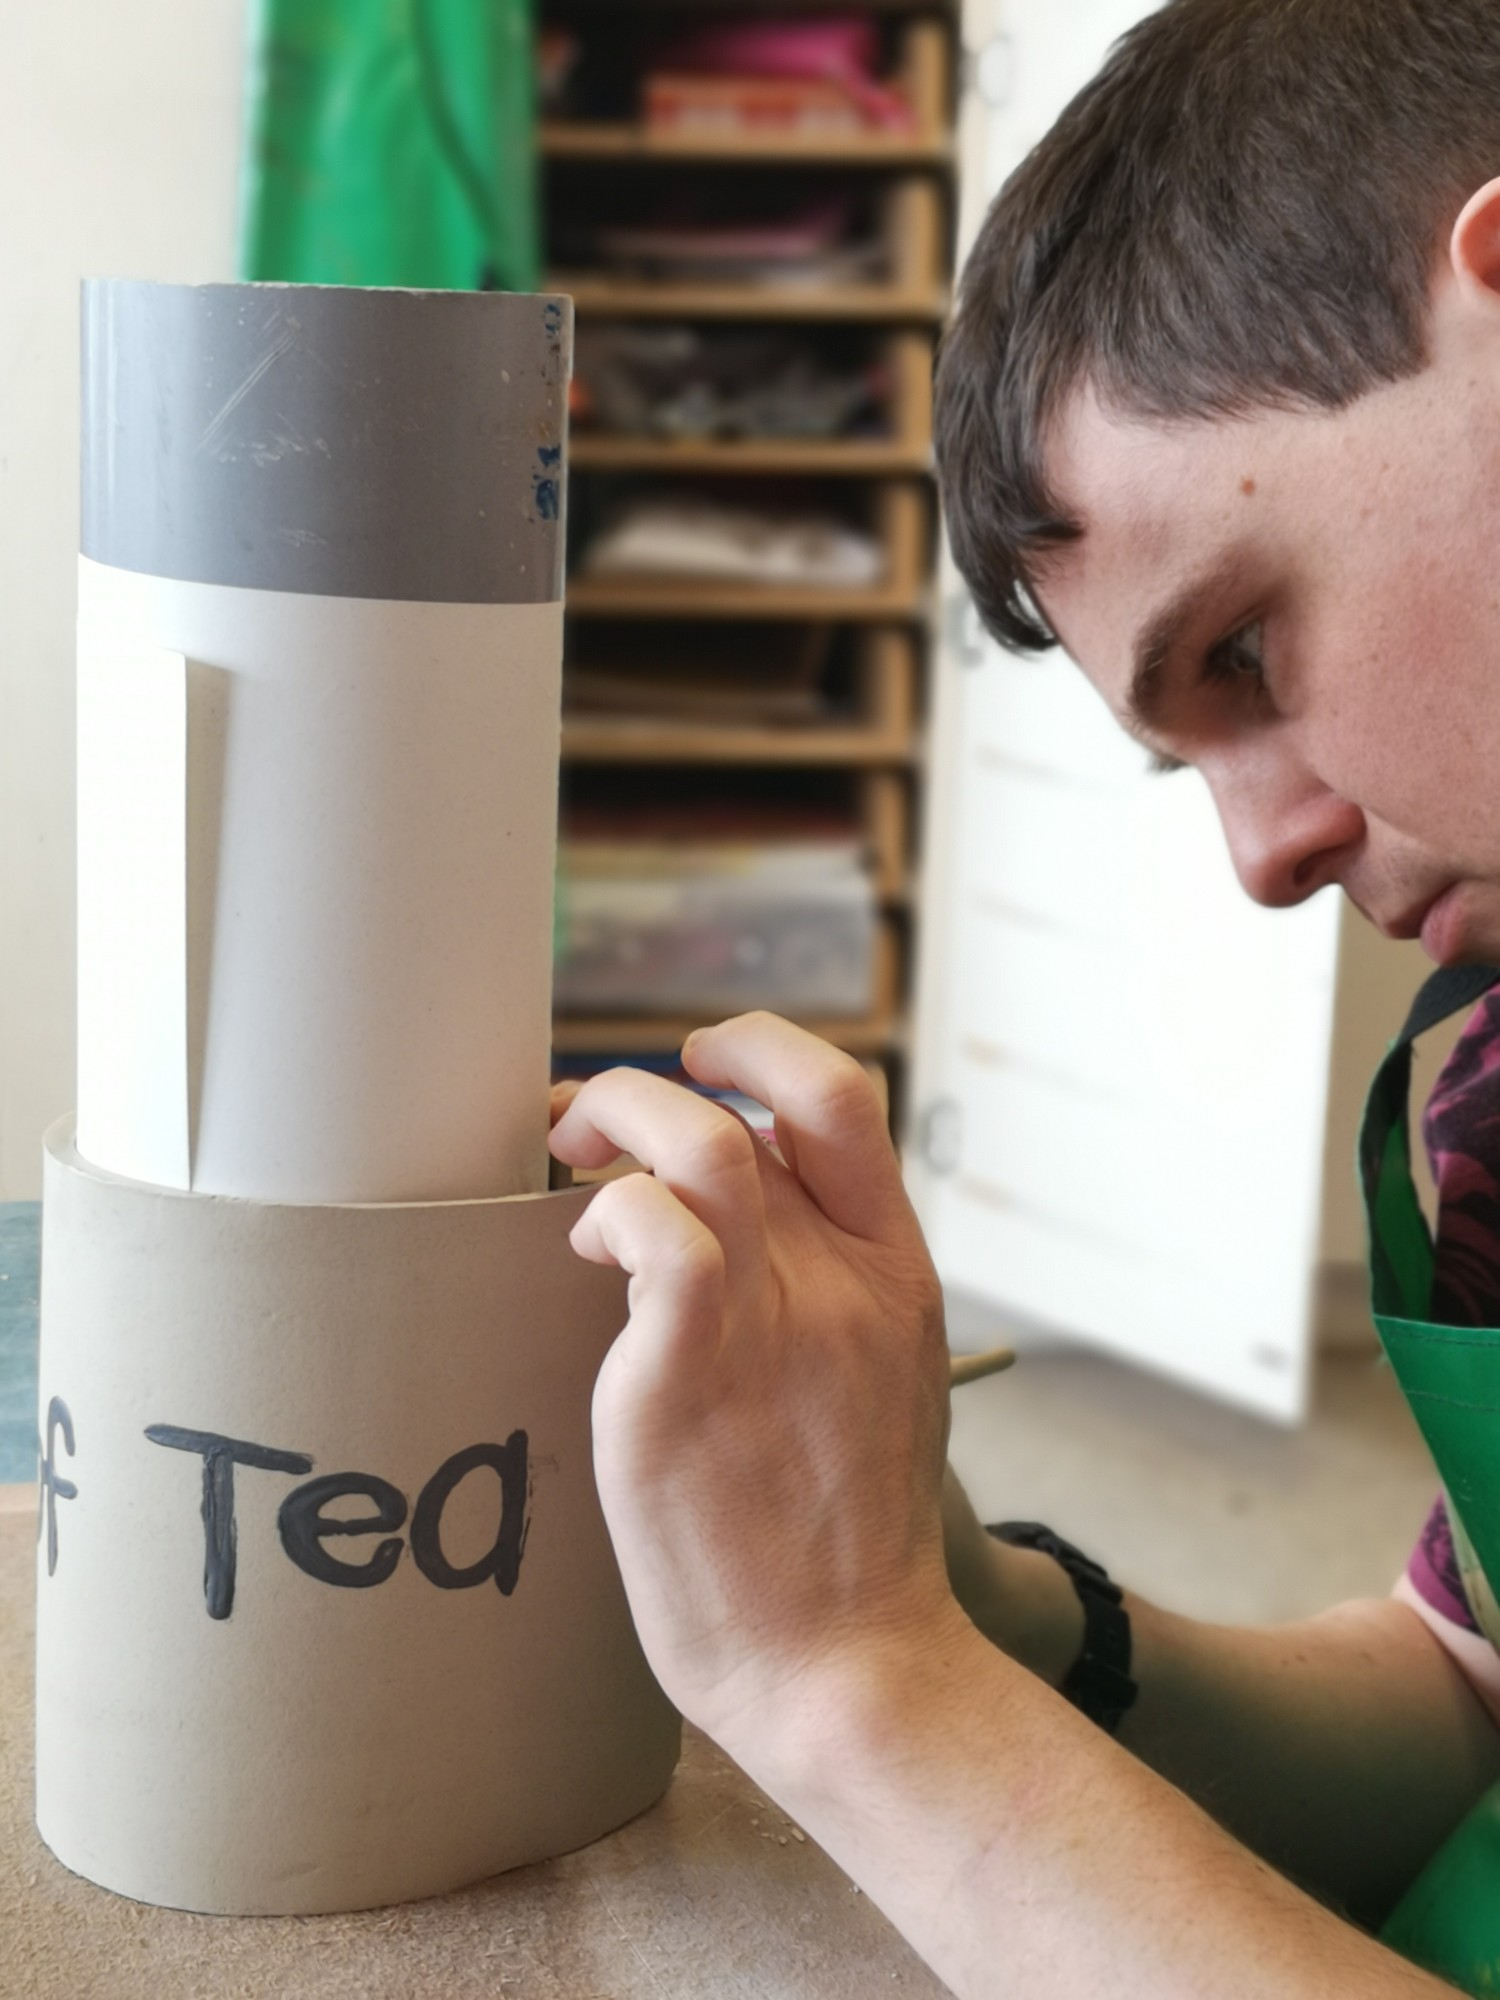 Manchester 10 Clay Event Led By Learning Disabled Artists From